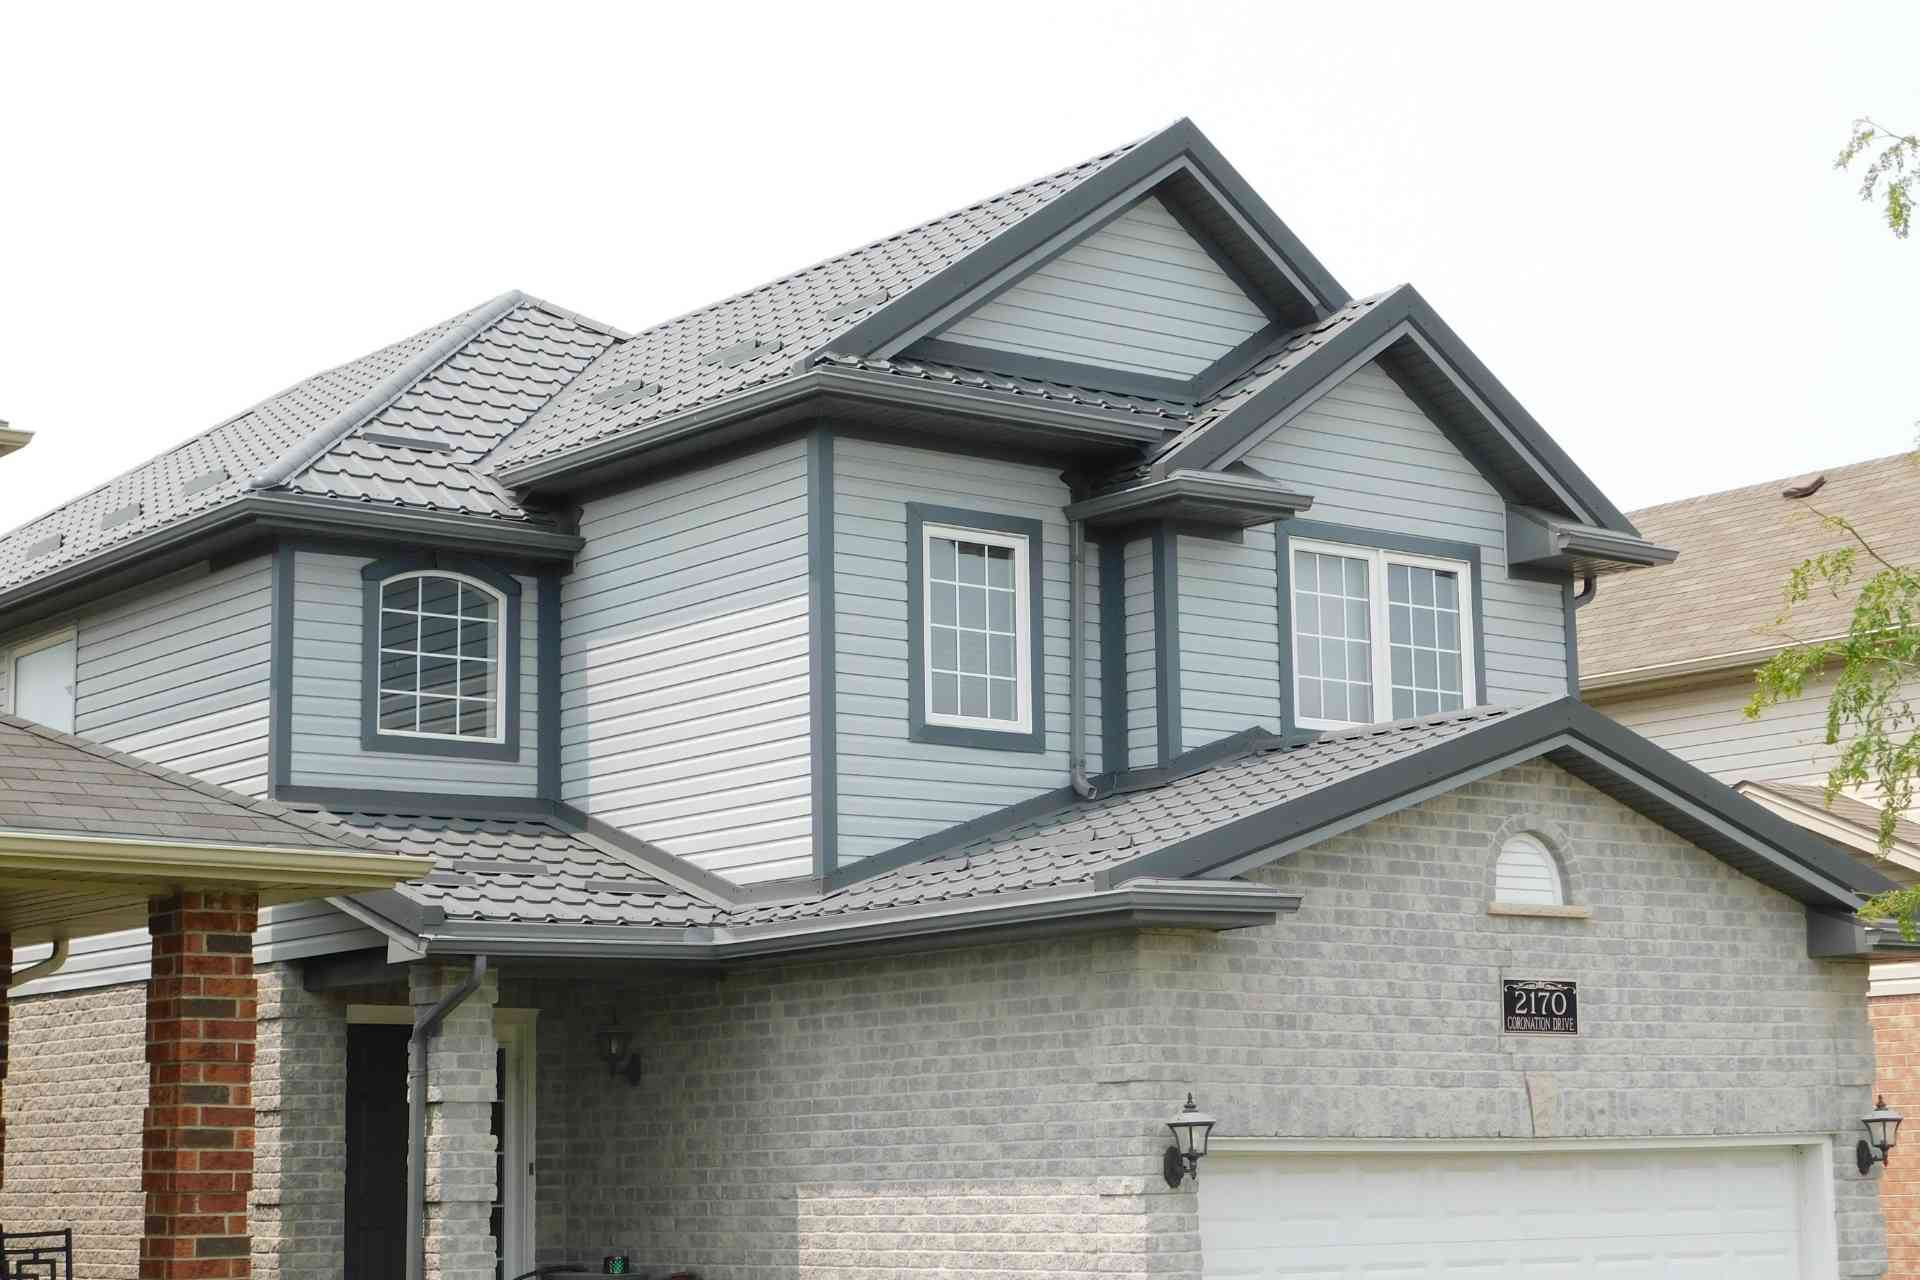 How To Maintain a Metal Roof?